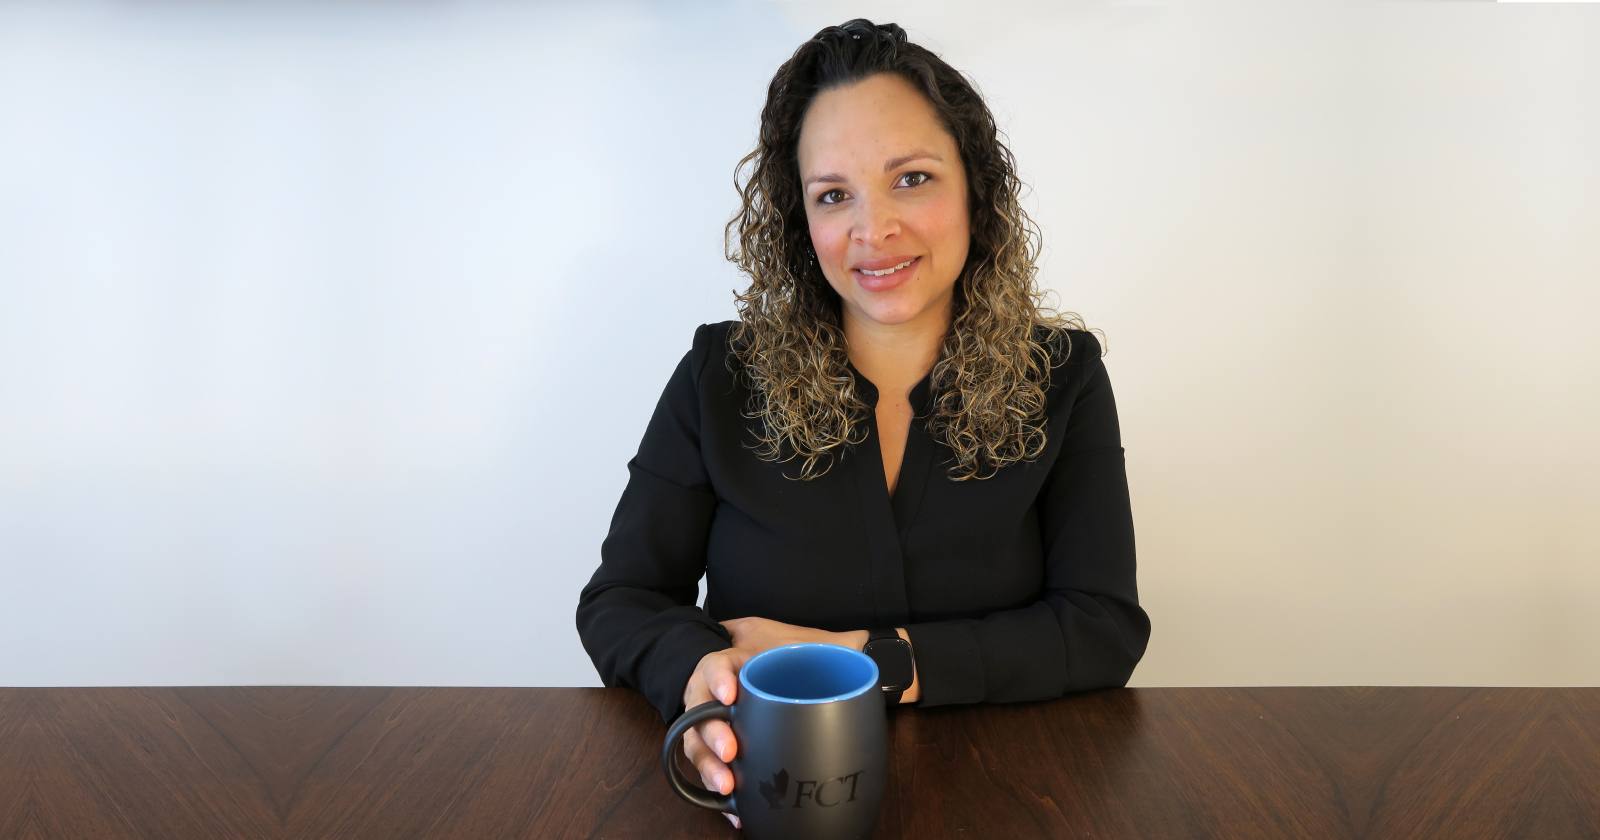 photo of Brenna Charles seated behind a table, smiling as she holds a coffee cup with FCT on it